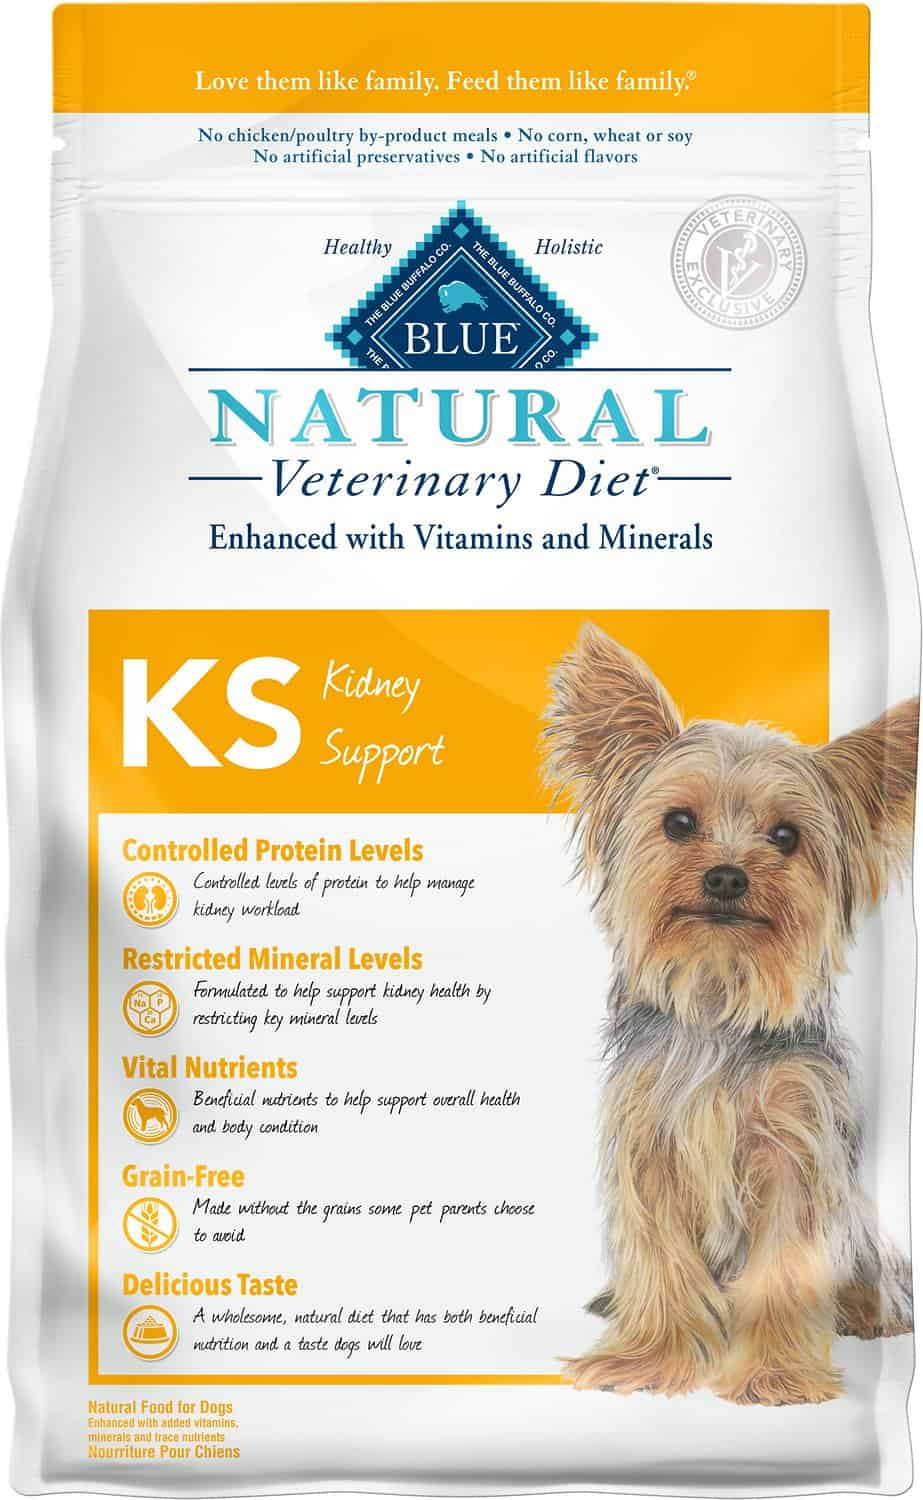 Recommendations for the Best Low Phosphorus Dog Food 5